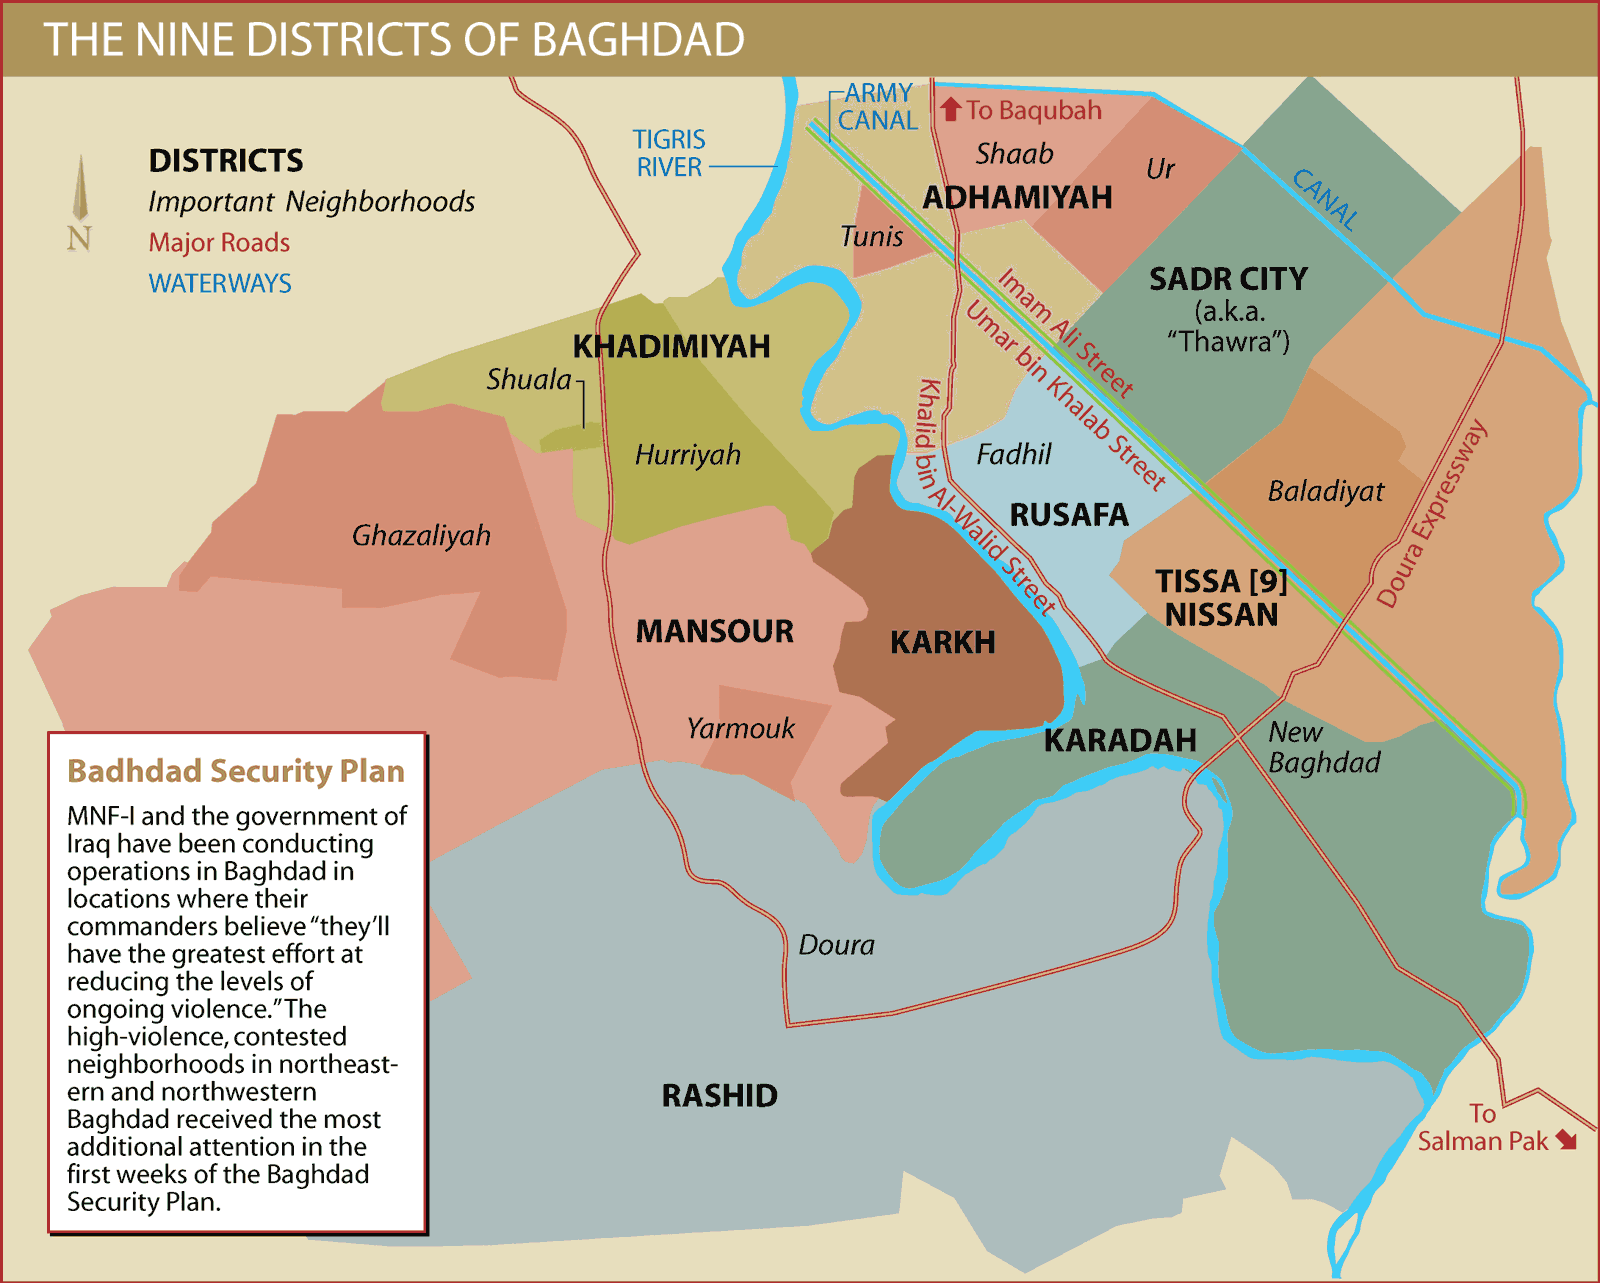 baghdad city districts large map